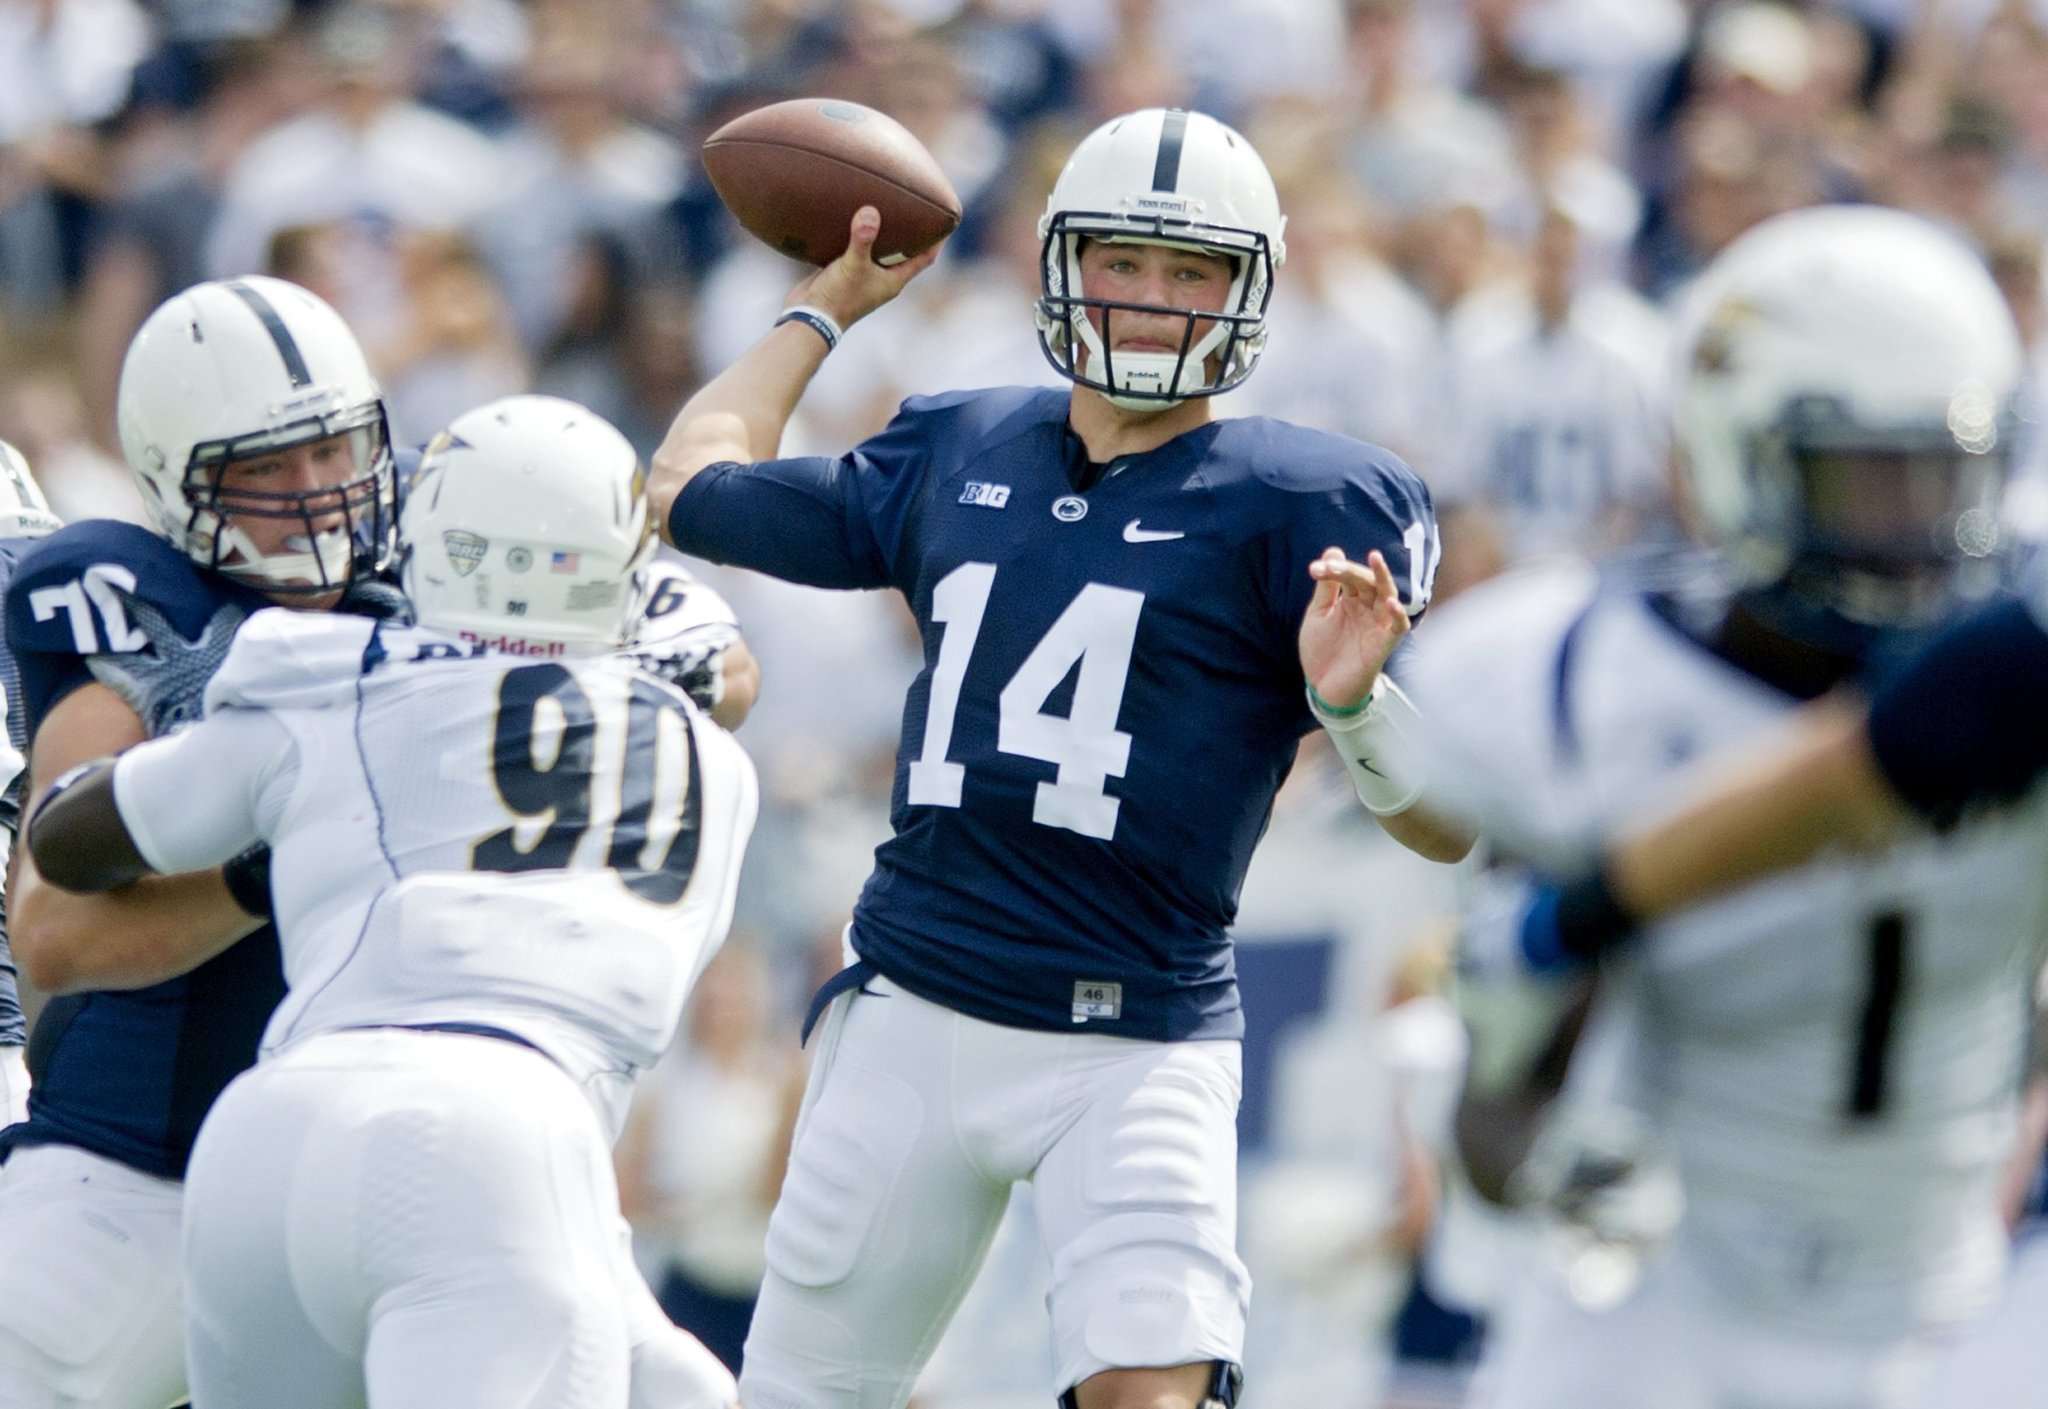 Throwbacks  Penn State ditching player names on football jerseys - Chicago  Tribune 58f58128accc